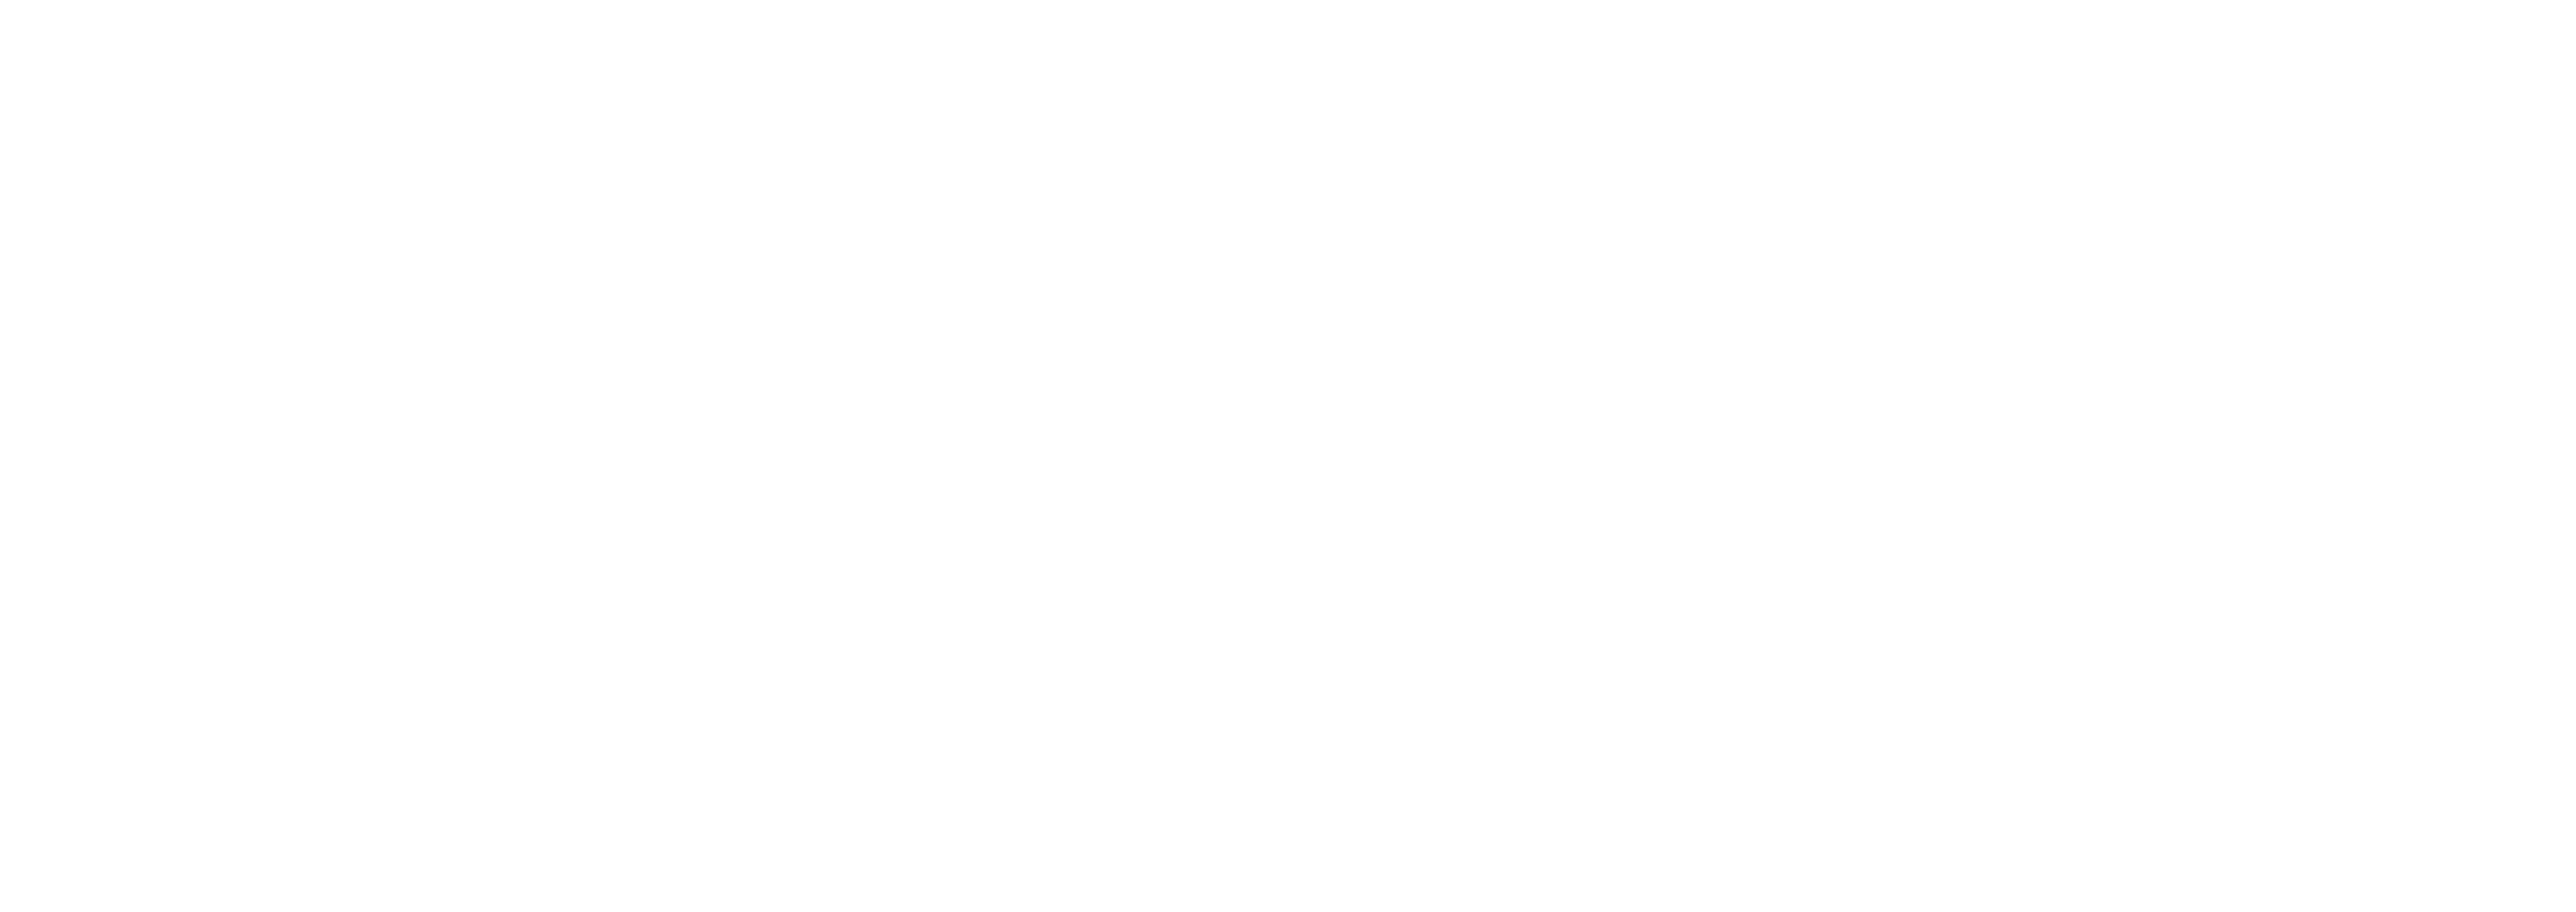 Winter clipart black and white snowflake clip art free download Winter Snowflake Decoration Transparent Clip Art | Gallery ... clip art free download